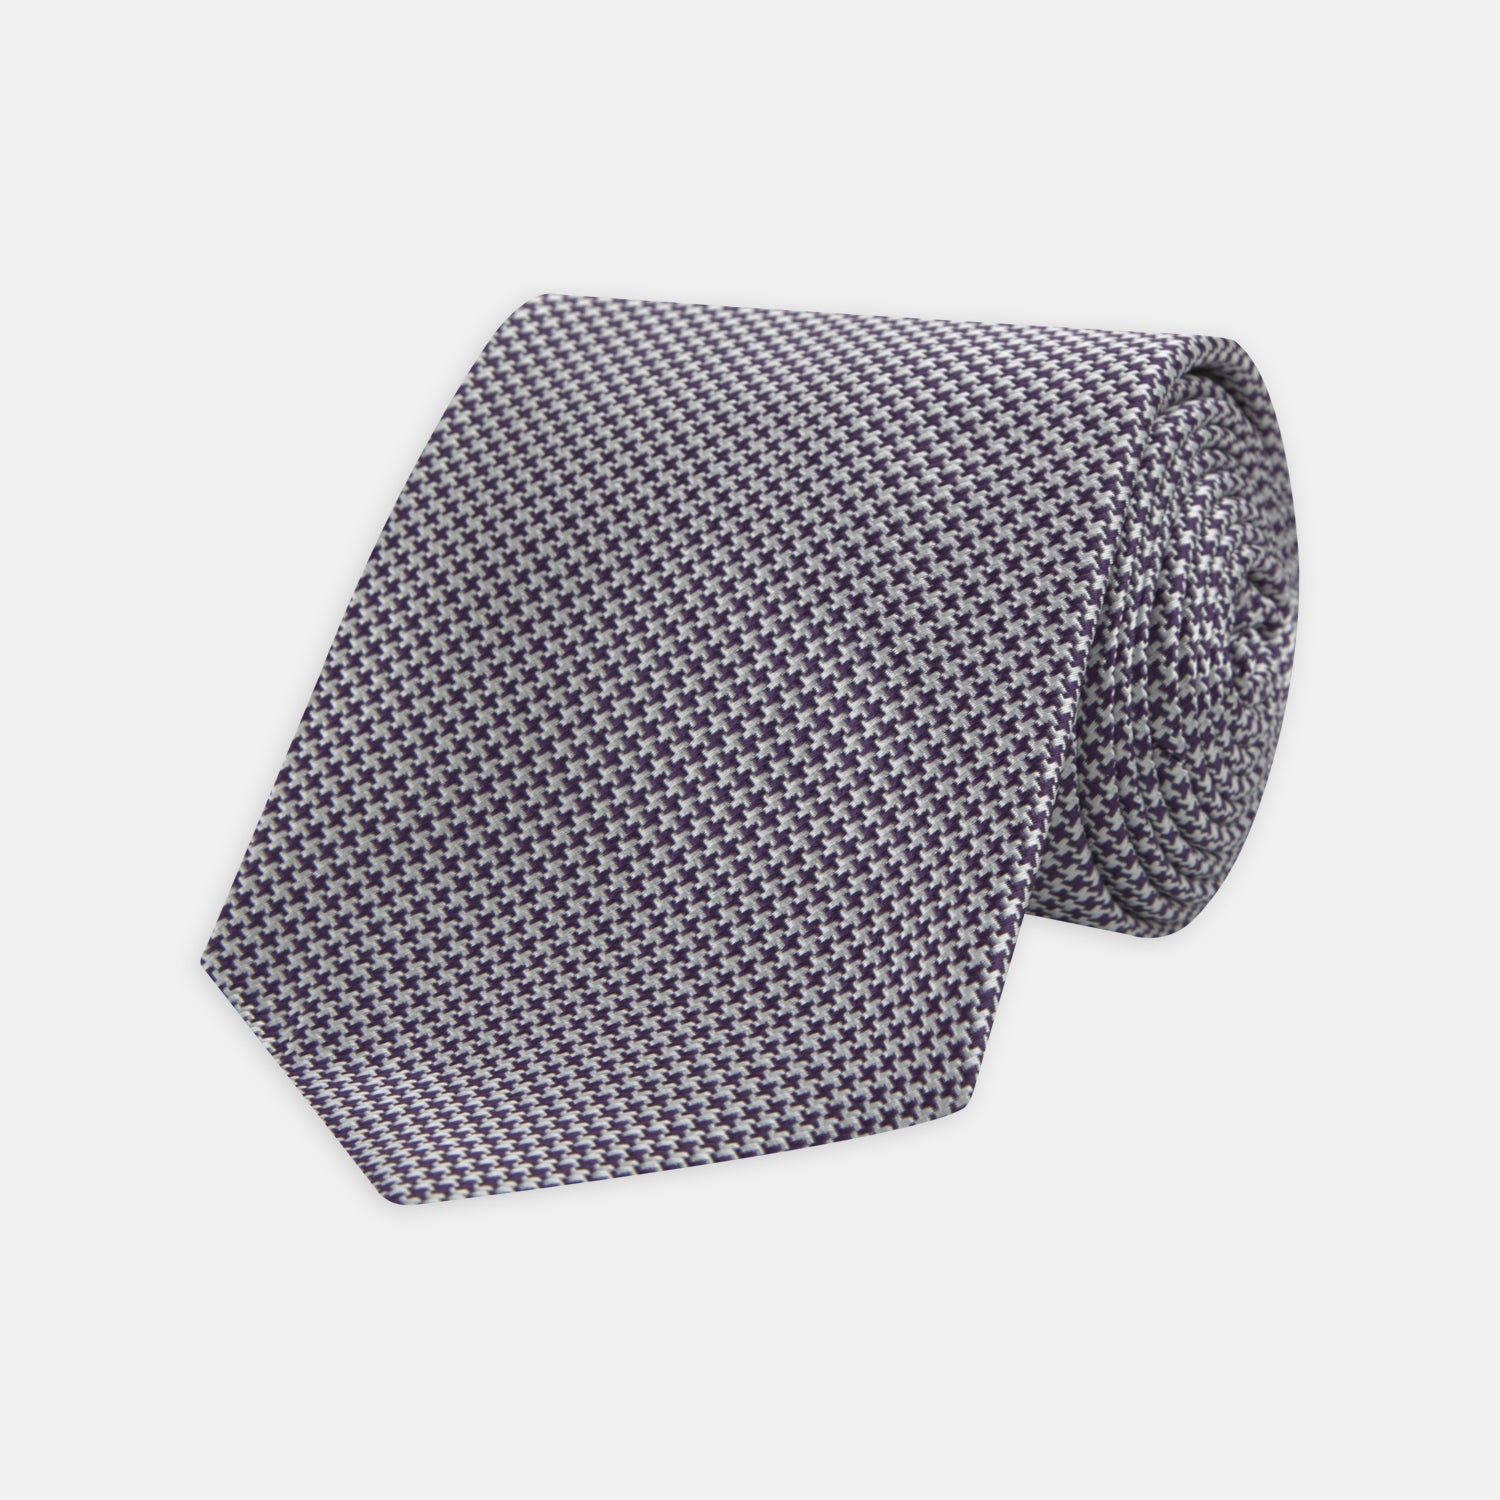 Plum Houndstooth Silk Tie - OS from Turnbull & Asser